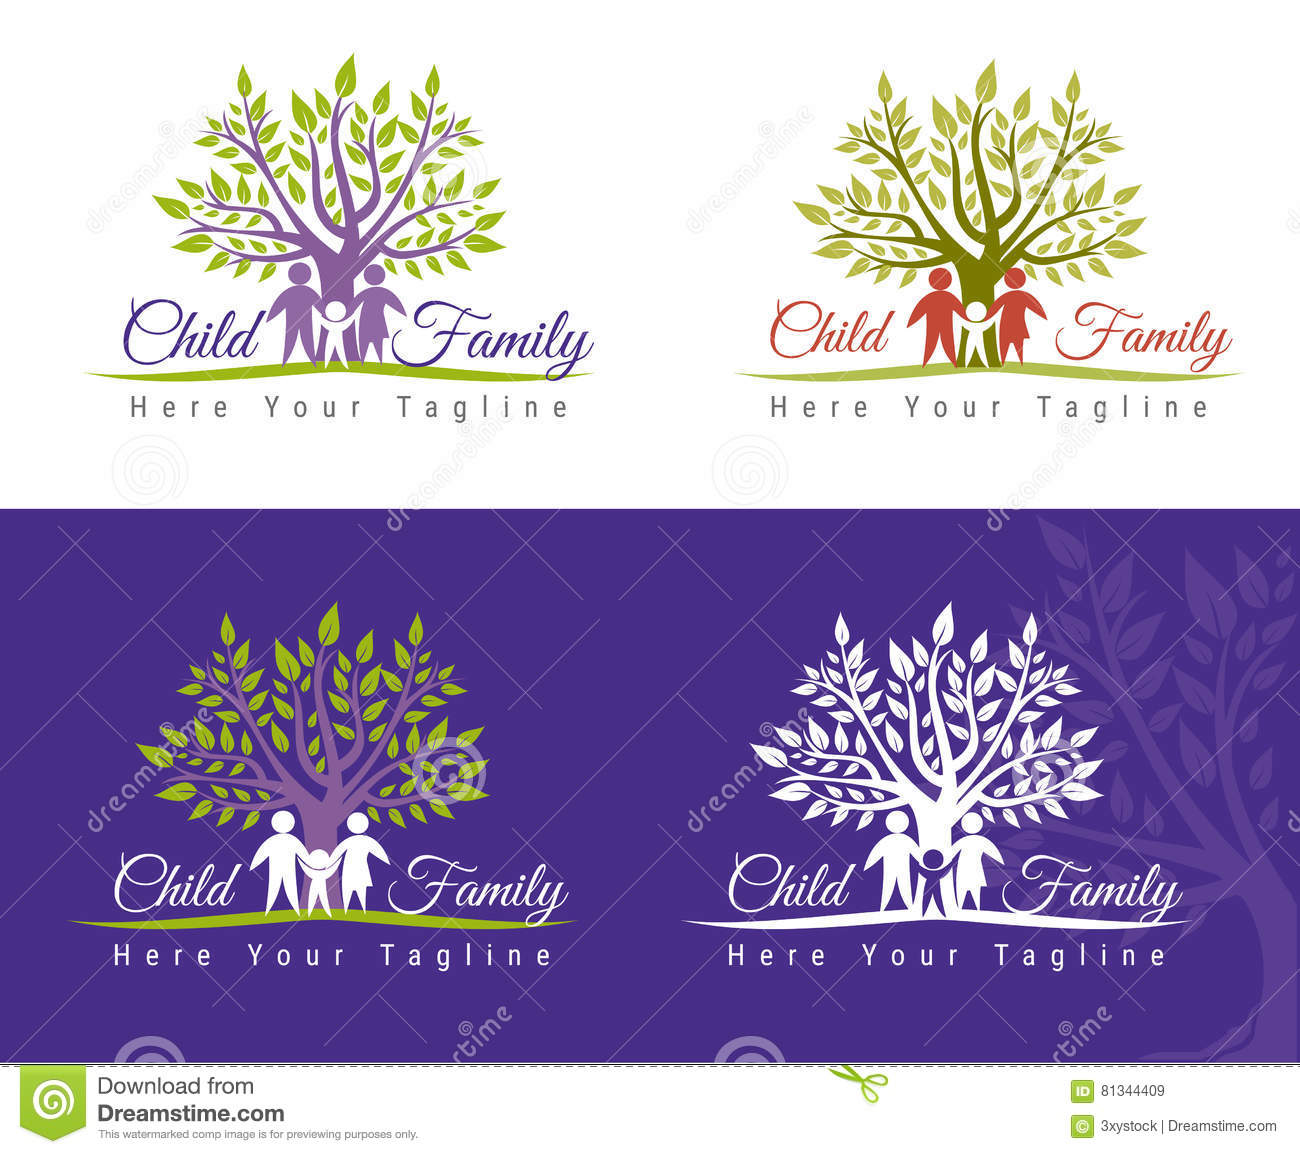 relationship and families by design